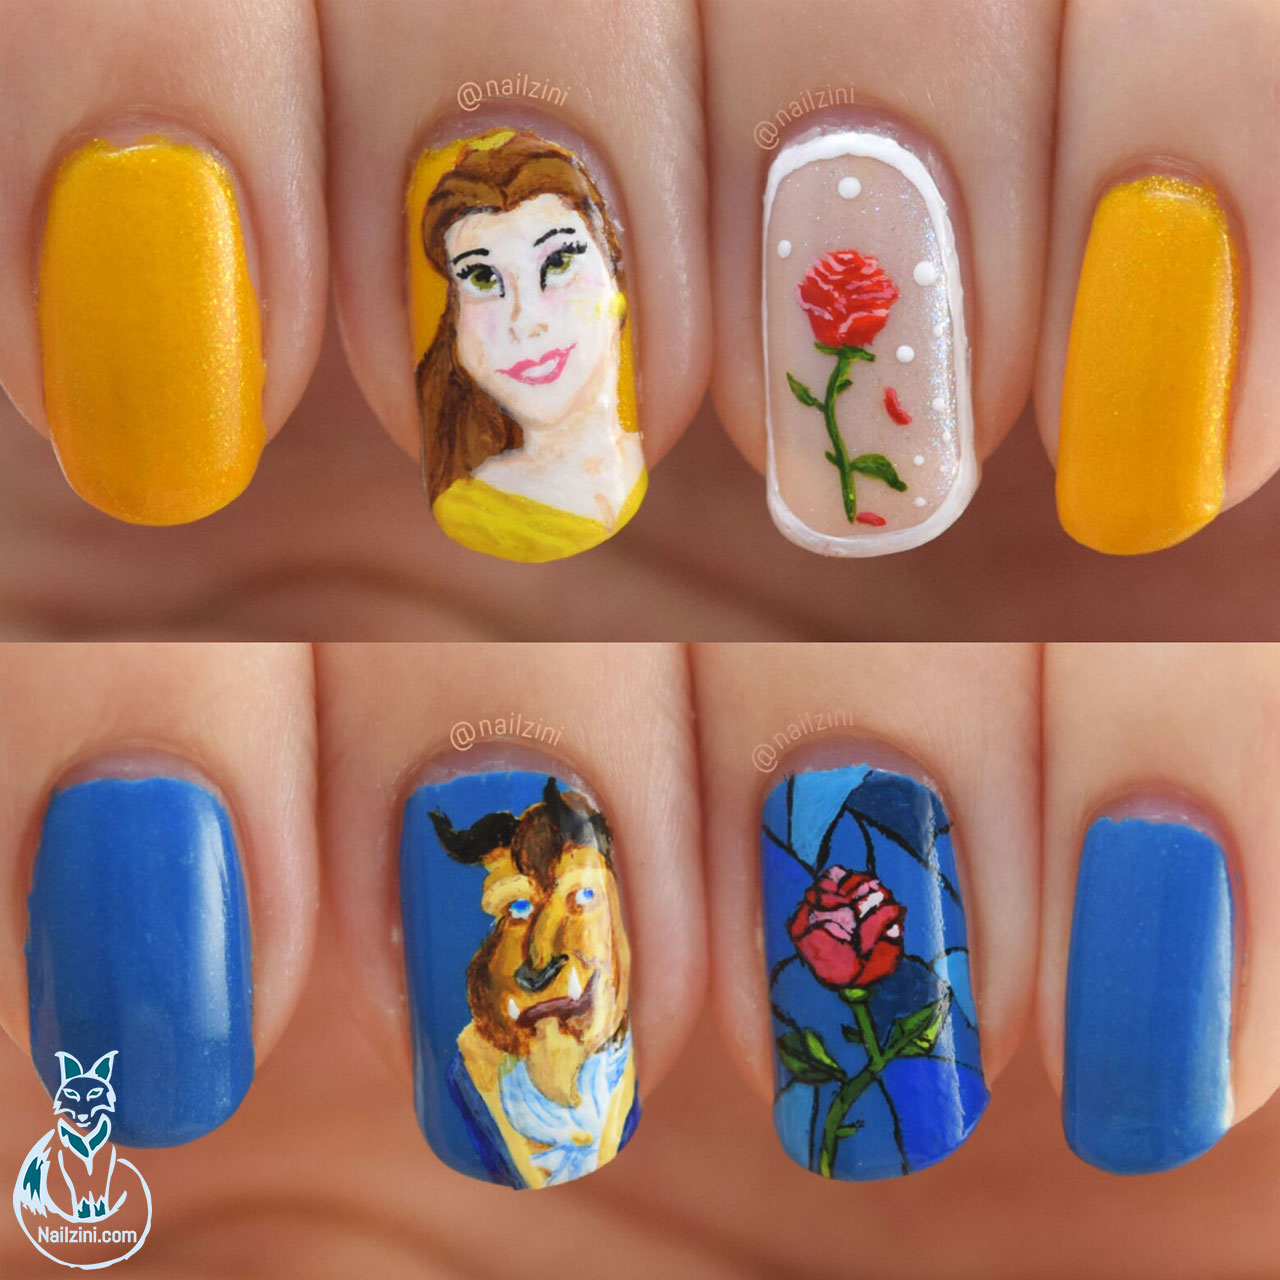 Beauty and the Beast Roses Nail Art Nailzini